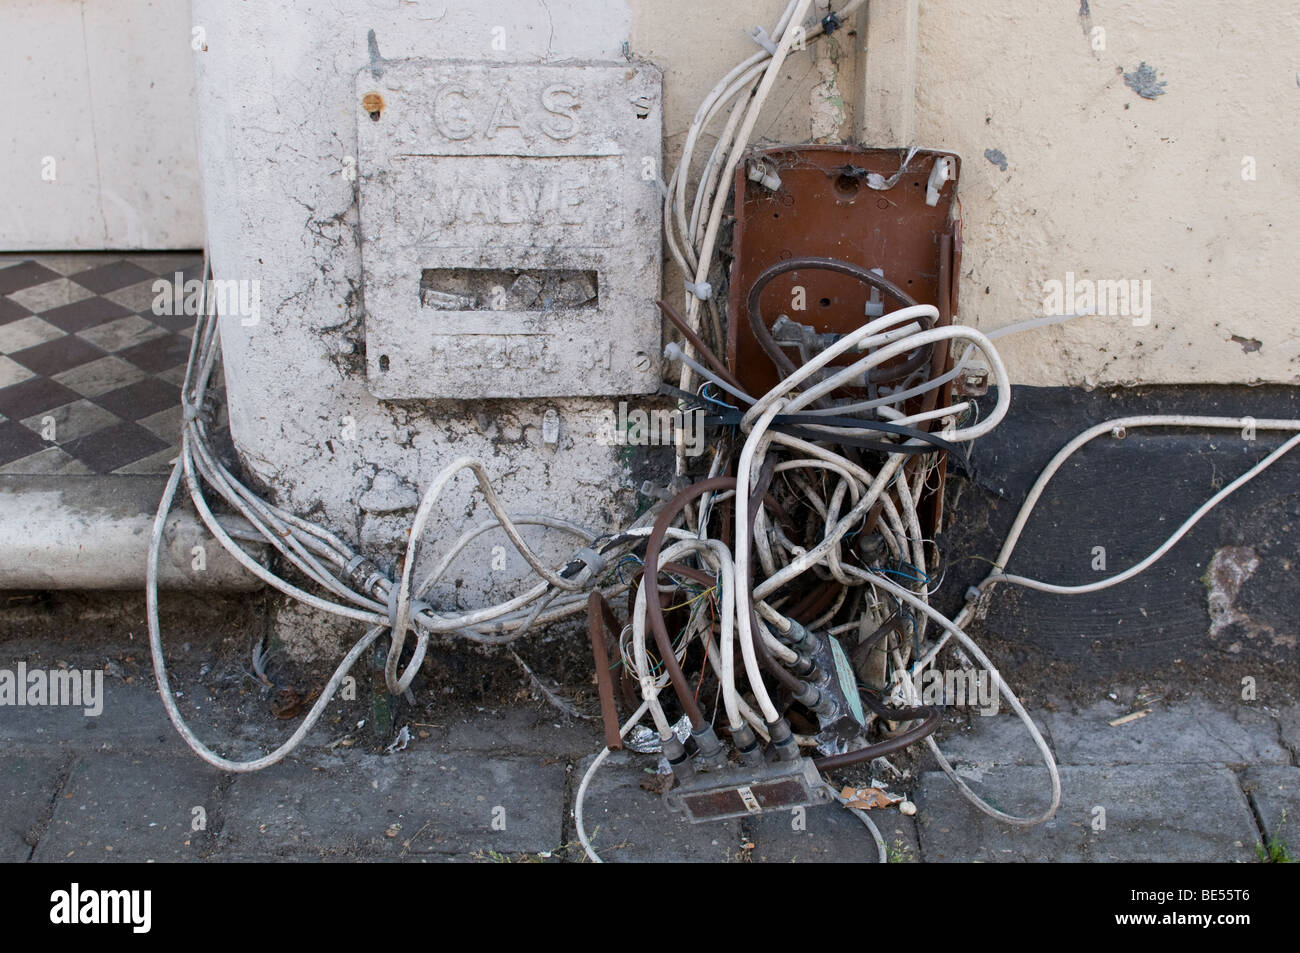 Mass Phone Cable Wiring Electrical Diagrams Forum Daewoo Fr251 Diagram A Of And Tv Leads Other Tangled Stock Rh Alamy Com